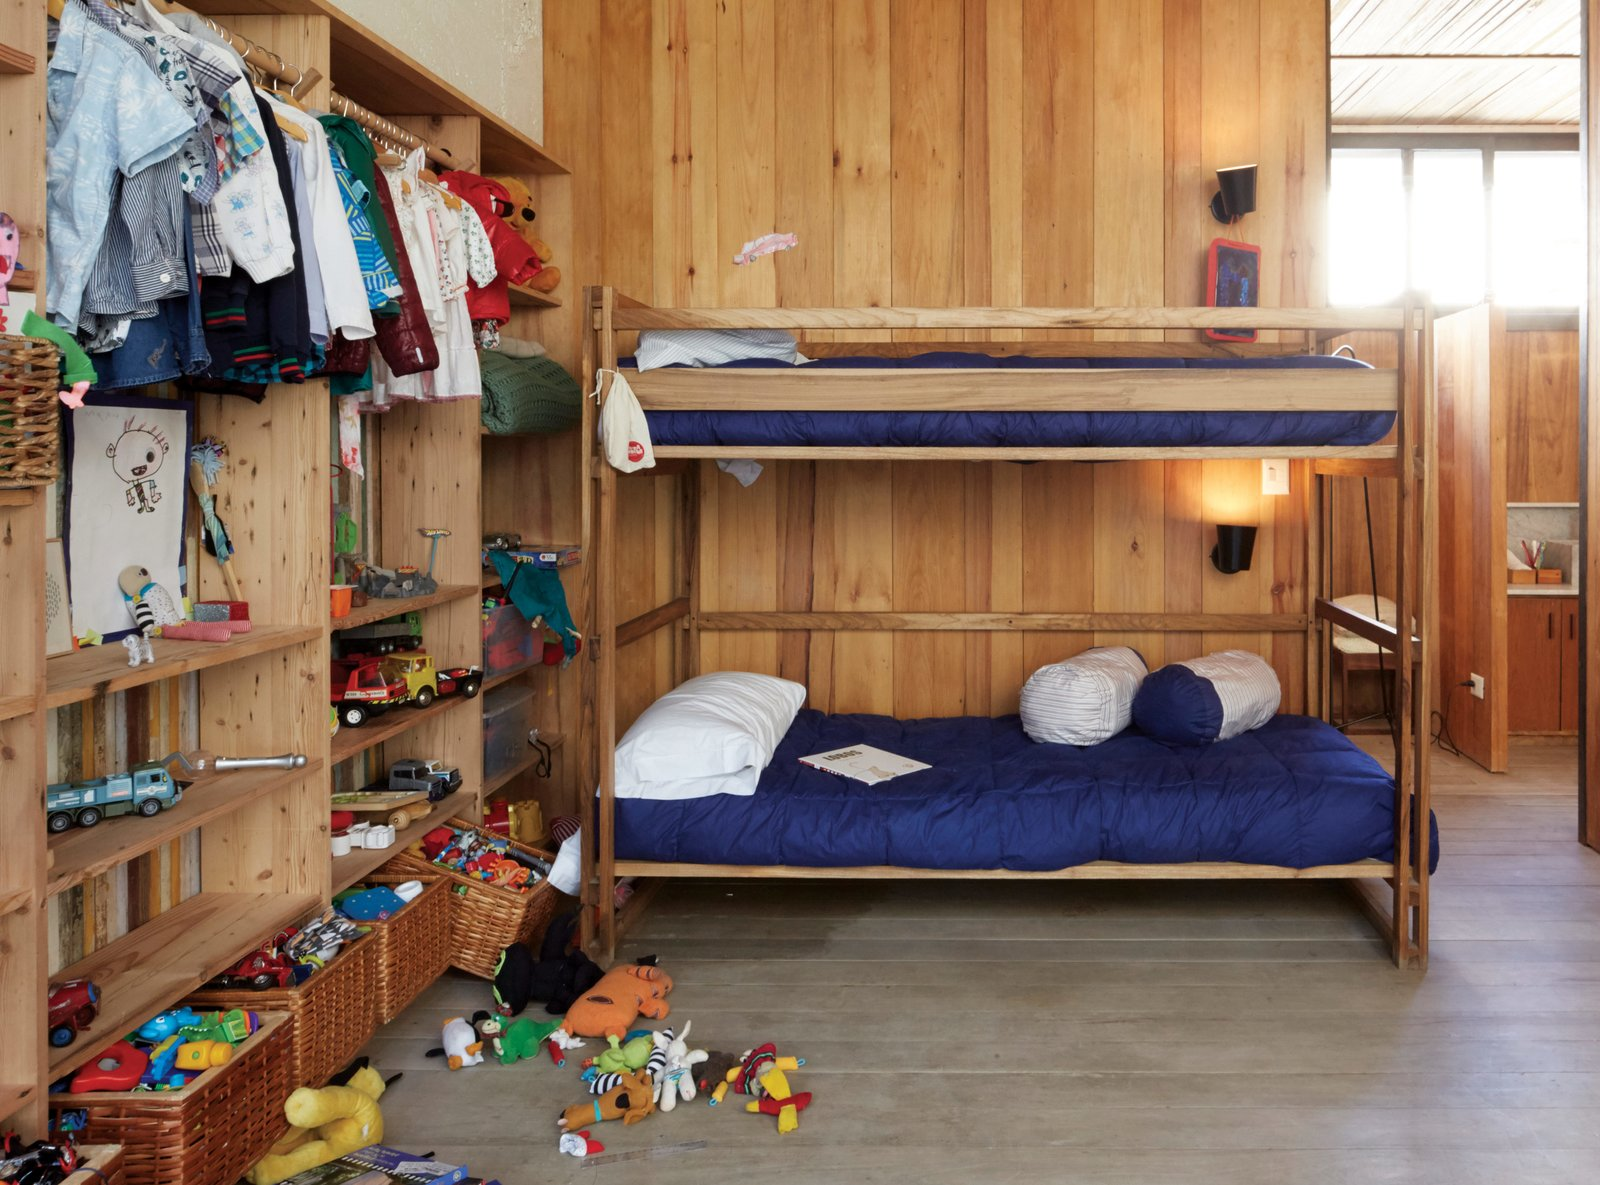 Kids, Bedroom, Bed, Bunks, Pre-Teen, Shelves, Light Hardwood, Boy, and Toddler The children's bedroom features NET bunk beds and storage baskets from Mono, the design shop of Sticotti's wife, Mercedes Hernáez.  Best Kids Light Hardwood Bunks Photos from One-of-a-Kind Furniture Fills This Delightfully Serene Buenos Aires Home